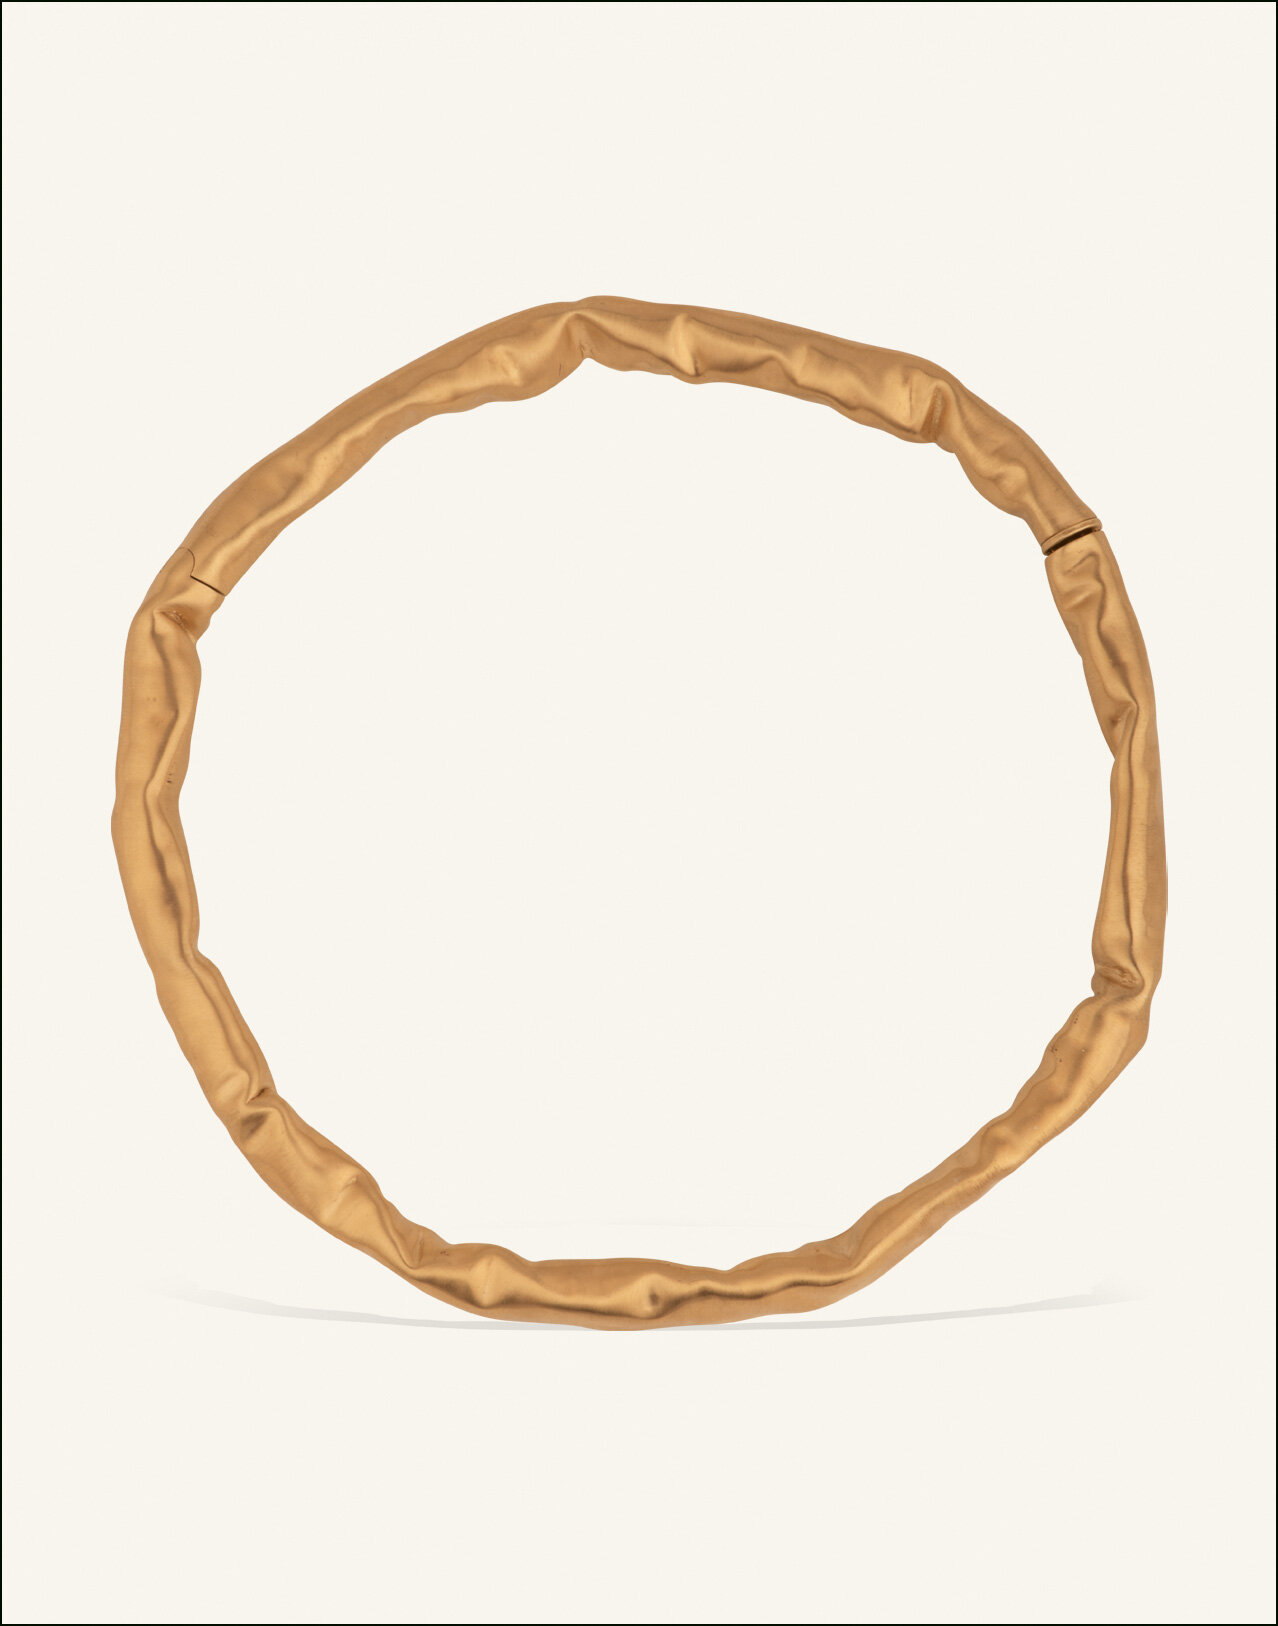 Completedworks-Gold-Vermeil-Collar-The-Accelerating-Expansion-of-the-Universe-1.jpg